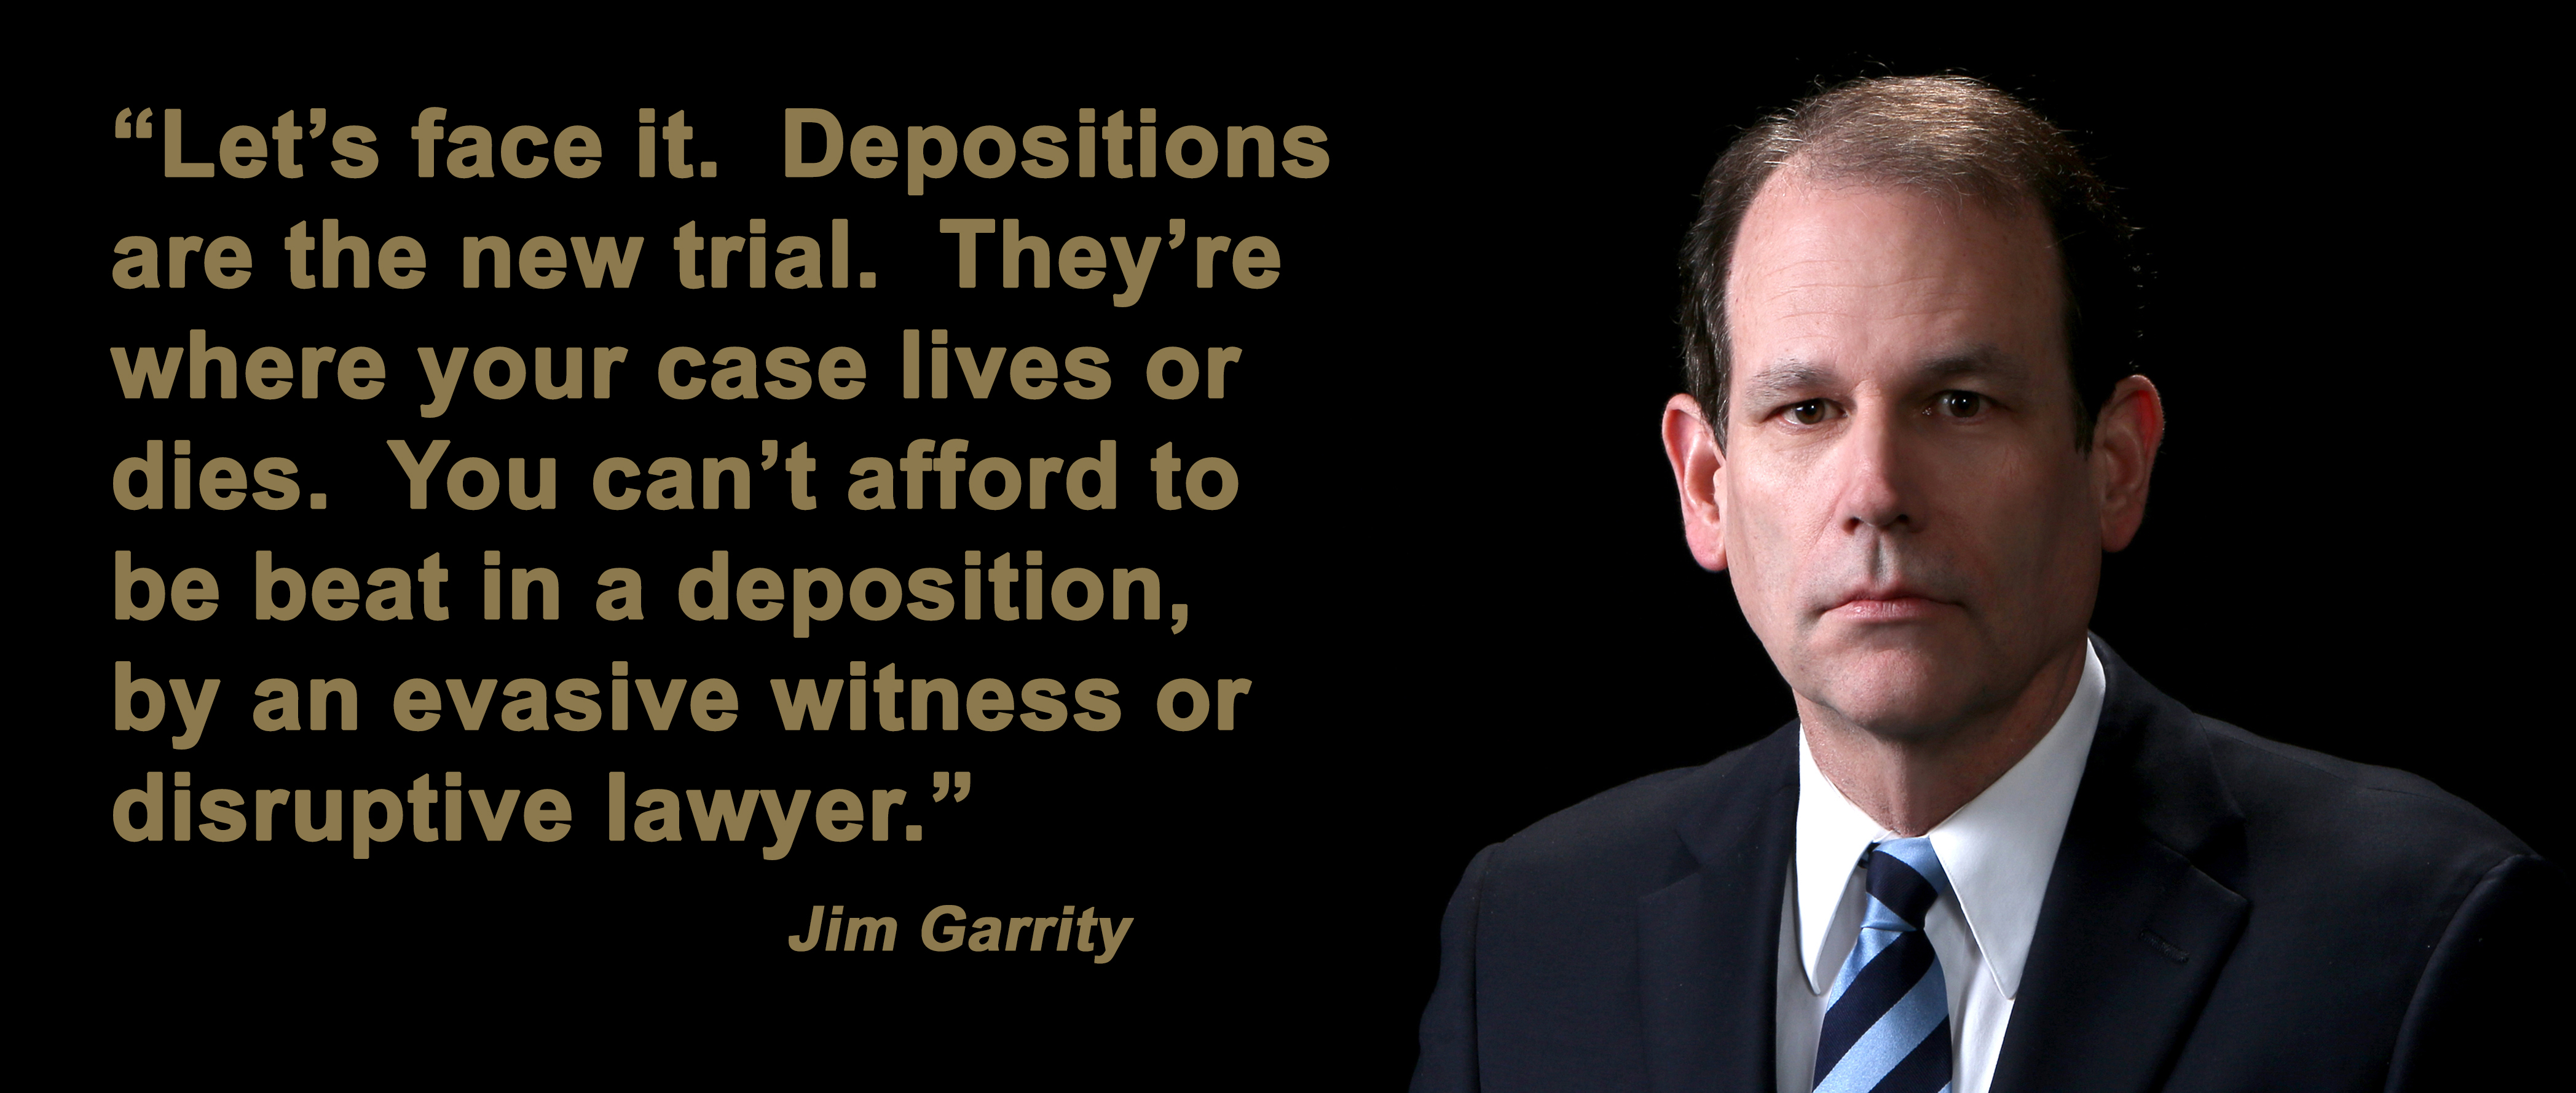 You win or lose cases in your depositions.